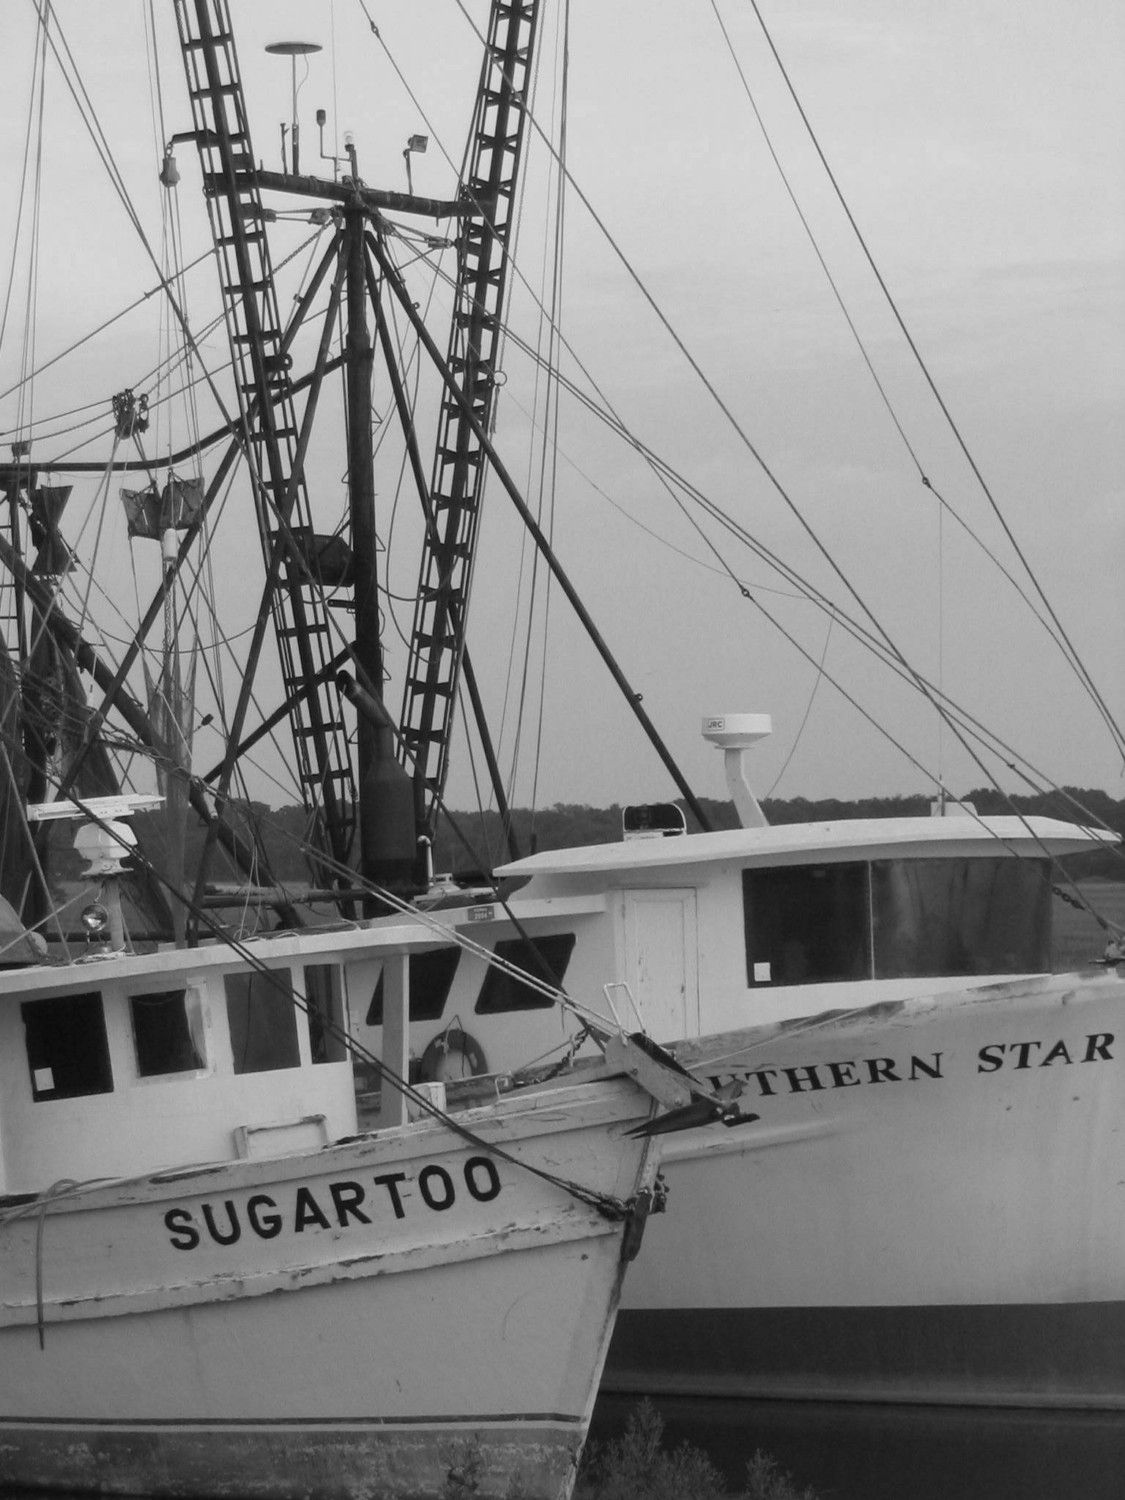 Shrimp boats in hilton head via etsy beach for Hilton head fishing party boat